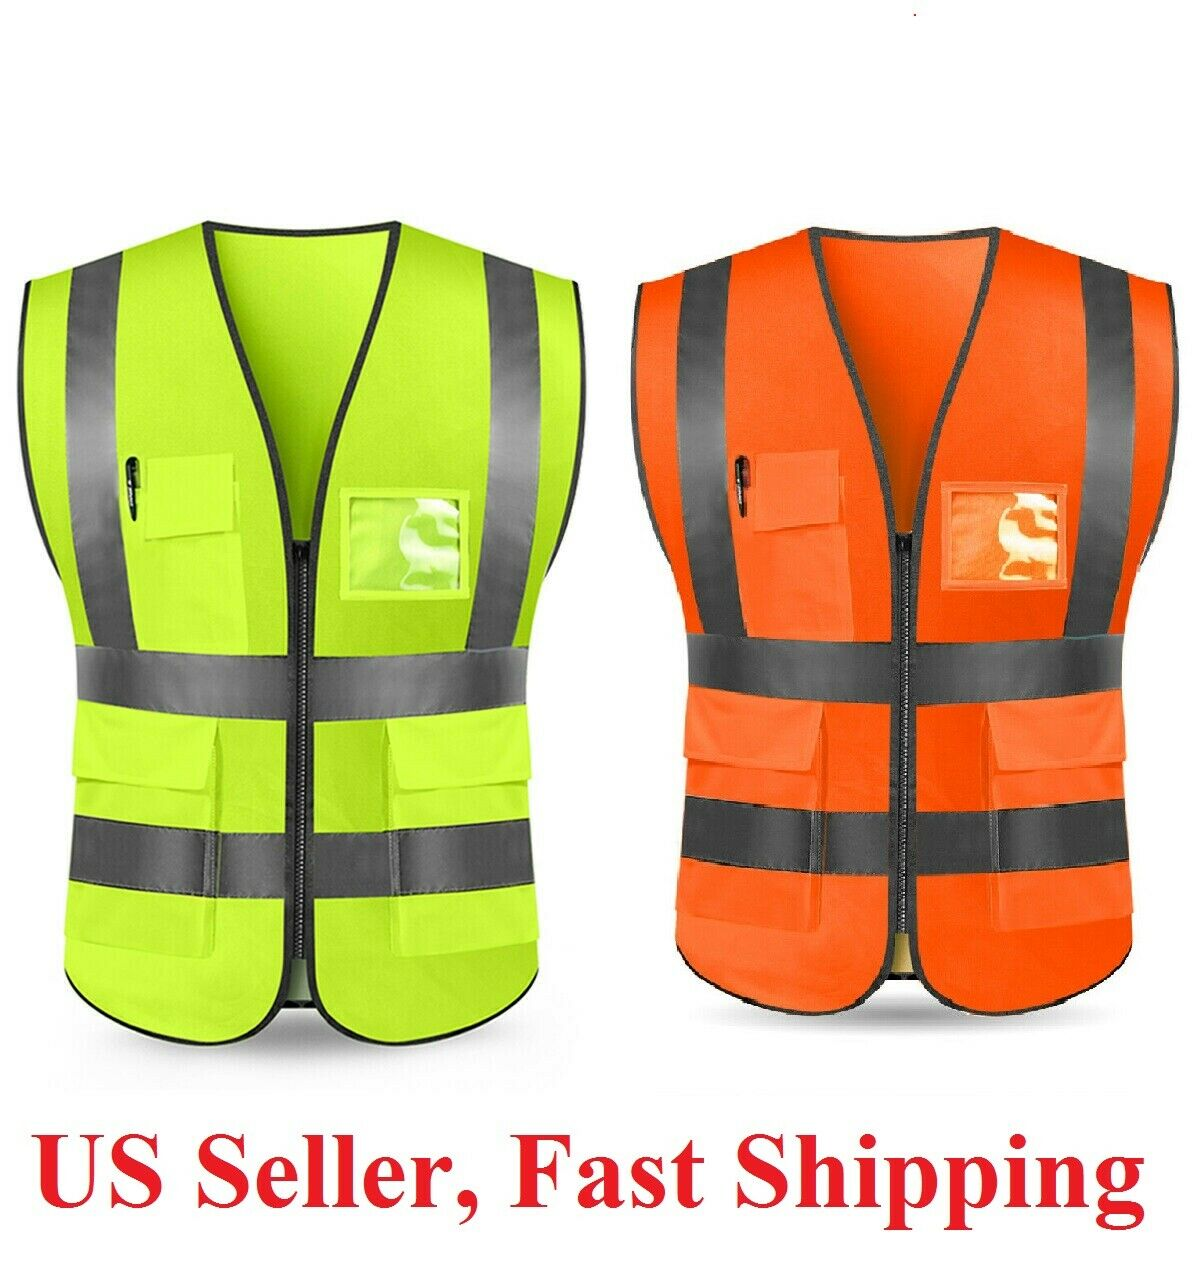 Neon Security Safety Vest High Visibility Reflective Stripes Orange & Yellow NGL Business & Industrial